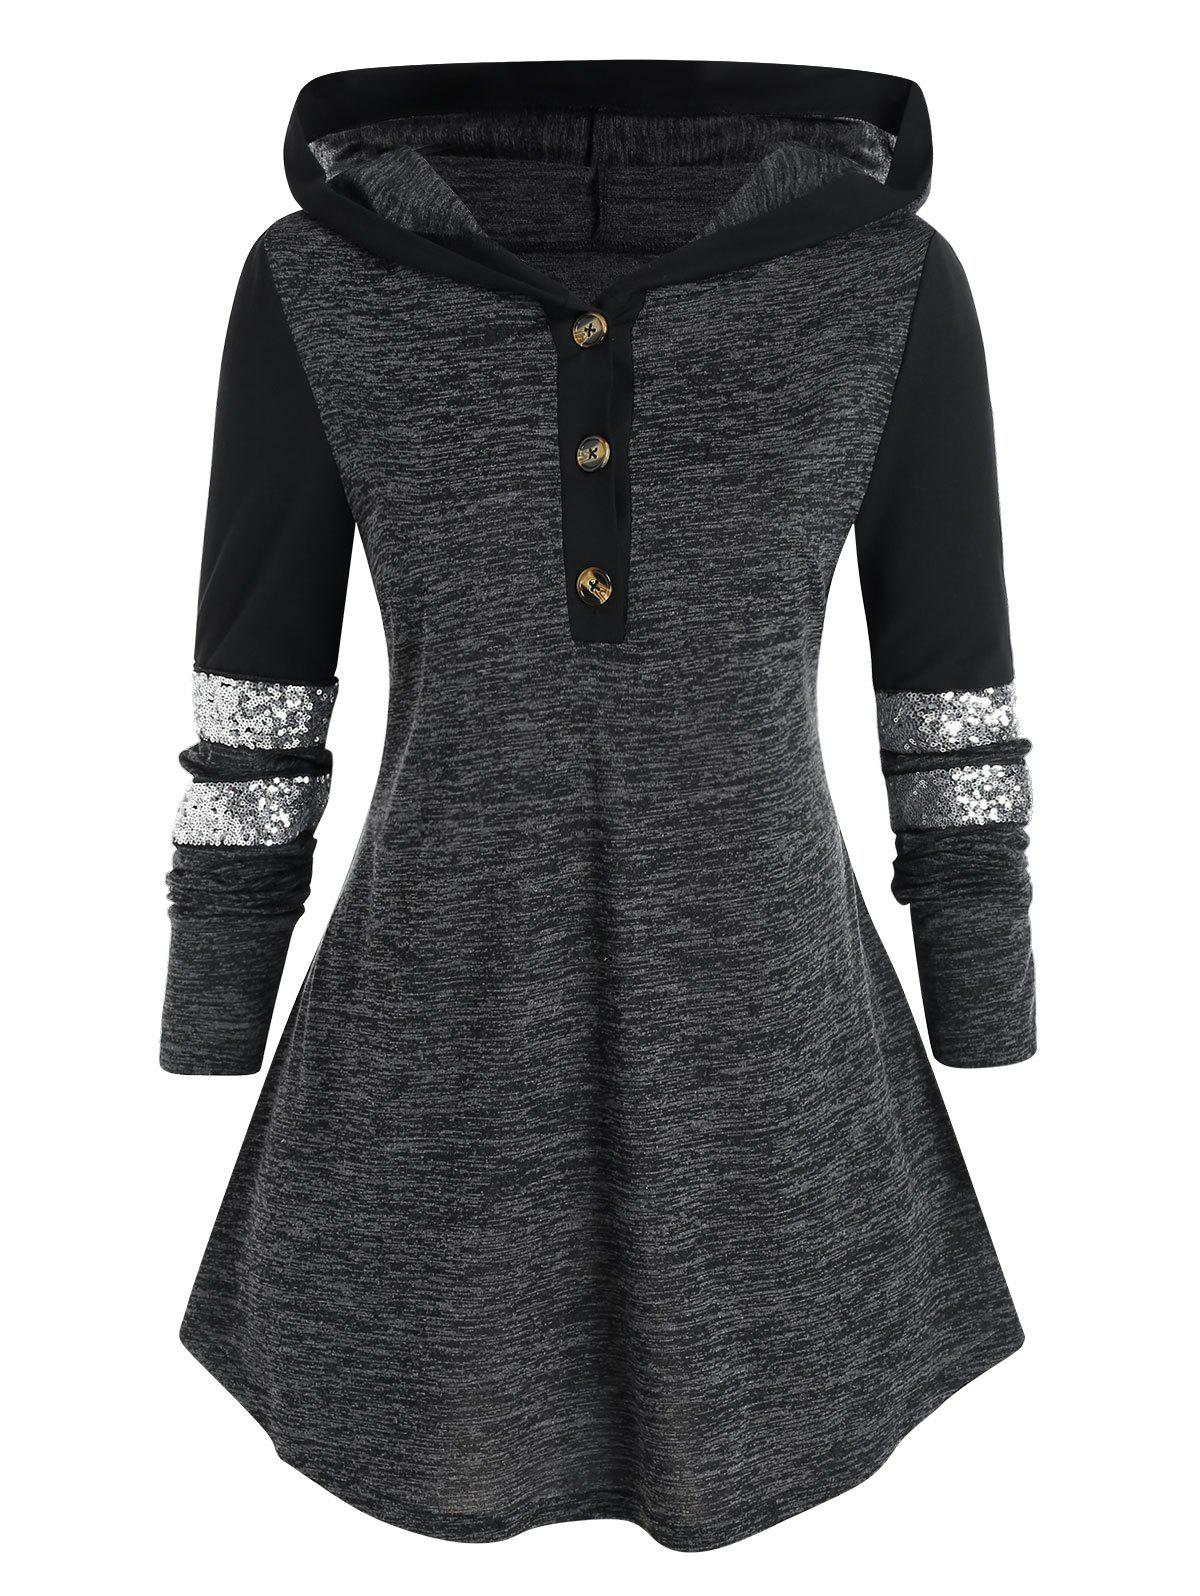 Plus Size Two Tone Hooded Sequined T Shirt - DARK SLATE GREY 2X